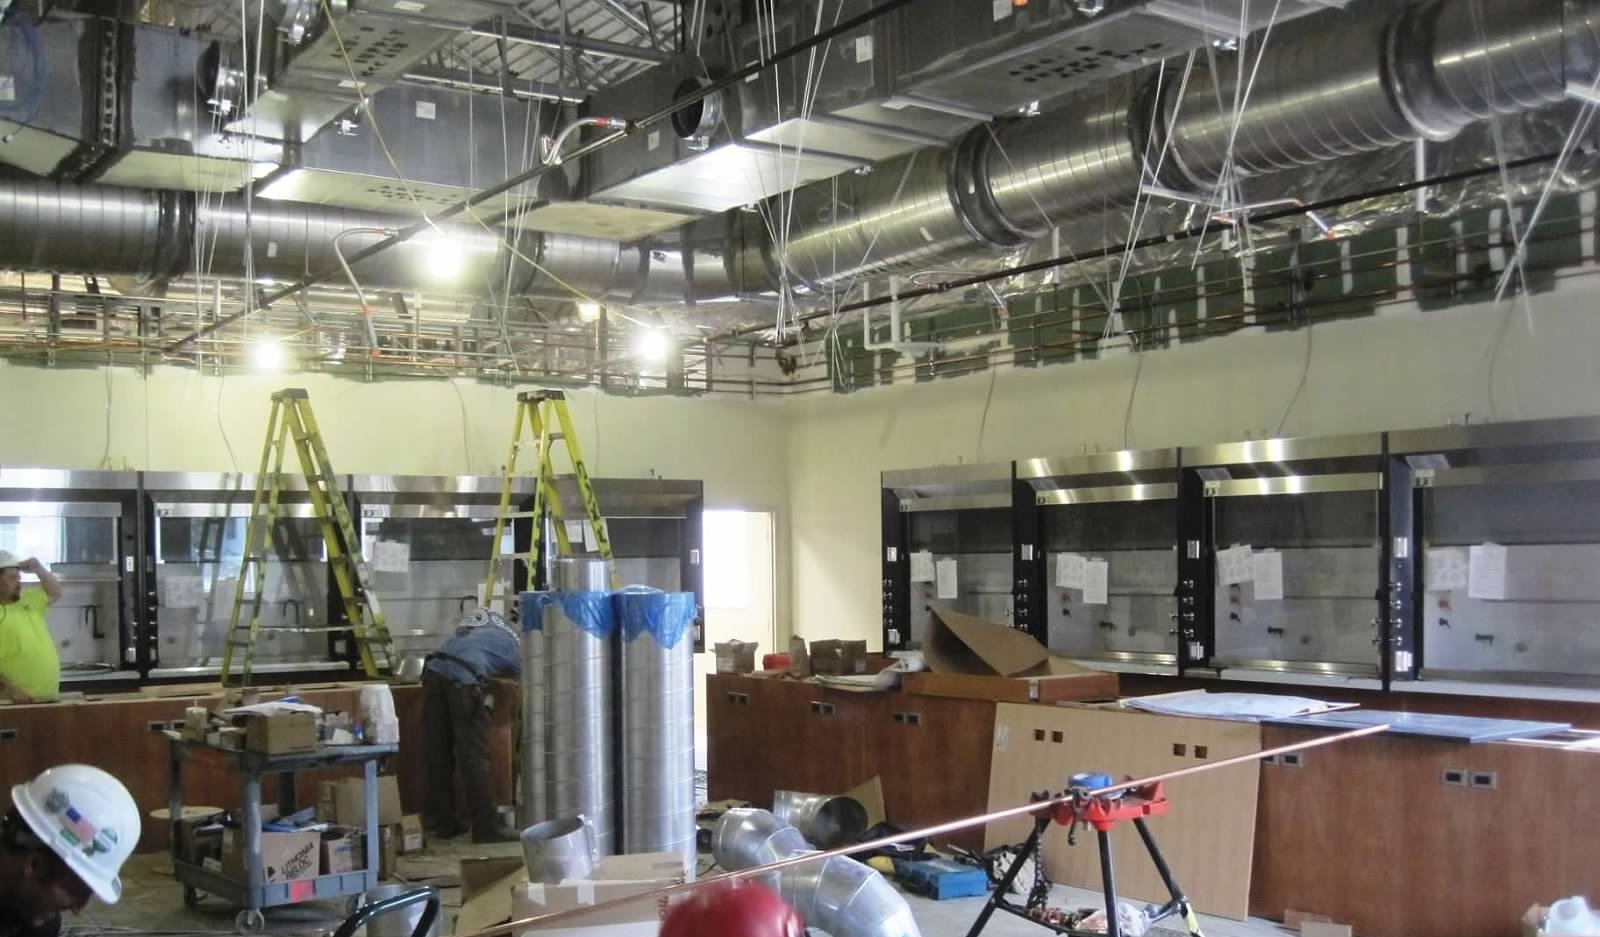 Fume Hoods and Ductwork at Freed Hardeman University